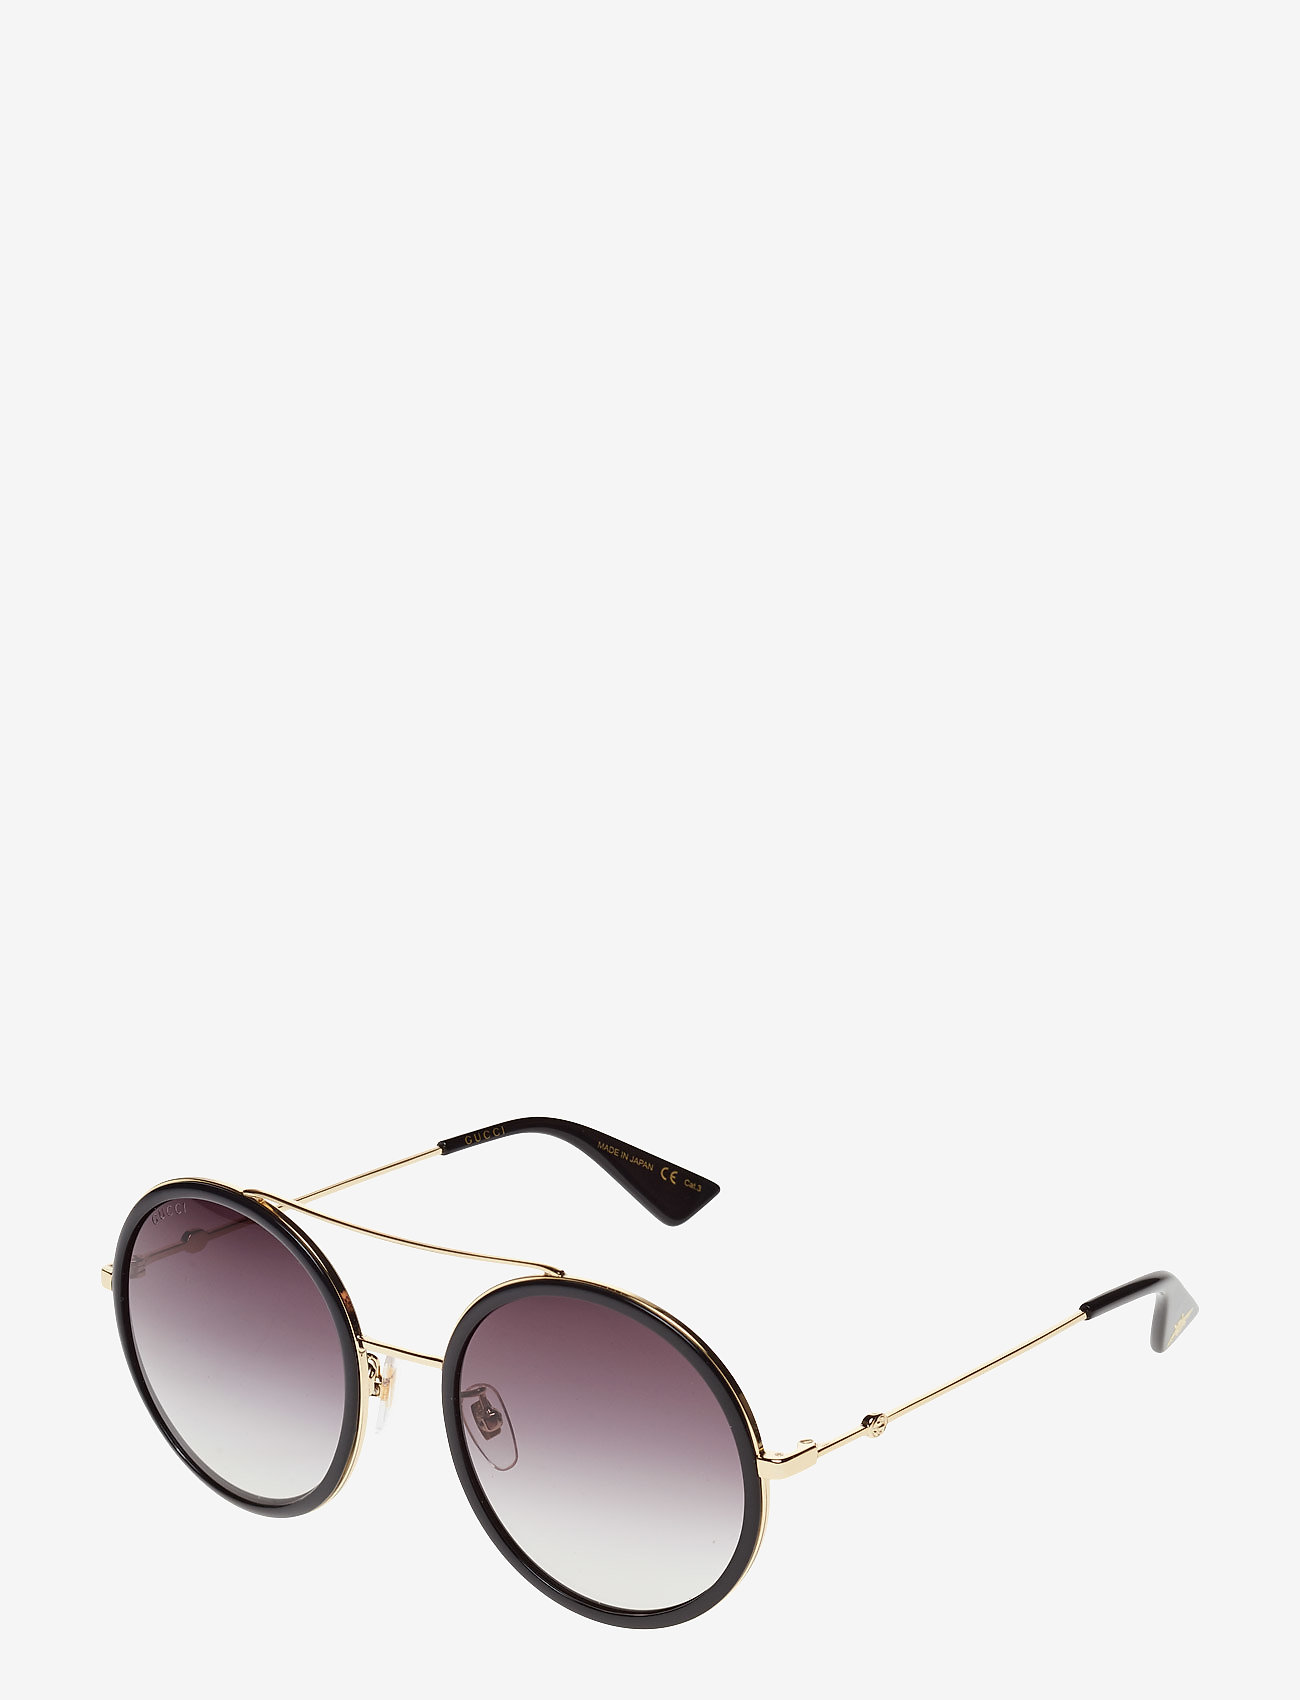 Gucci Sunglasses - GG0061S - round frame - gold-gold-grey - 1